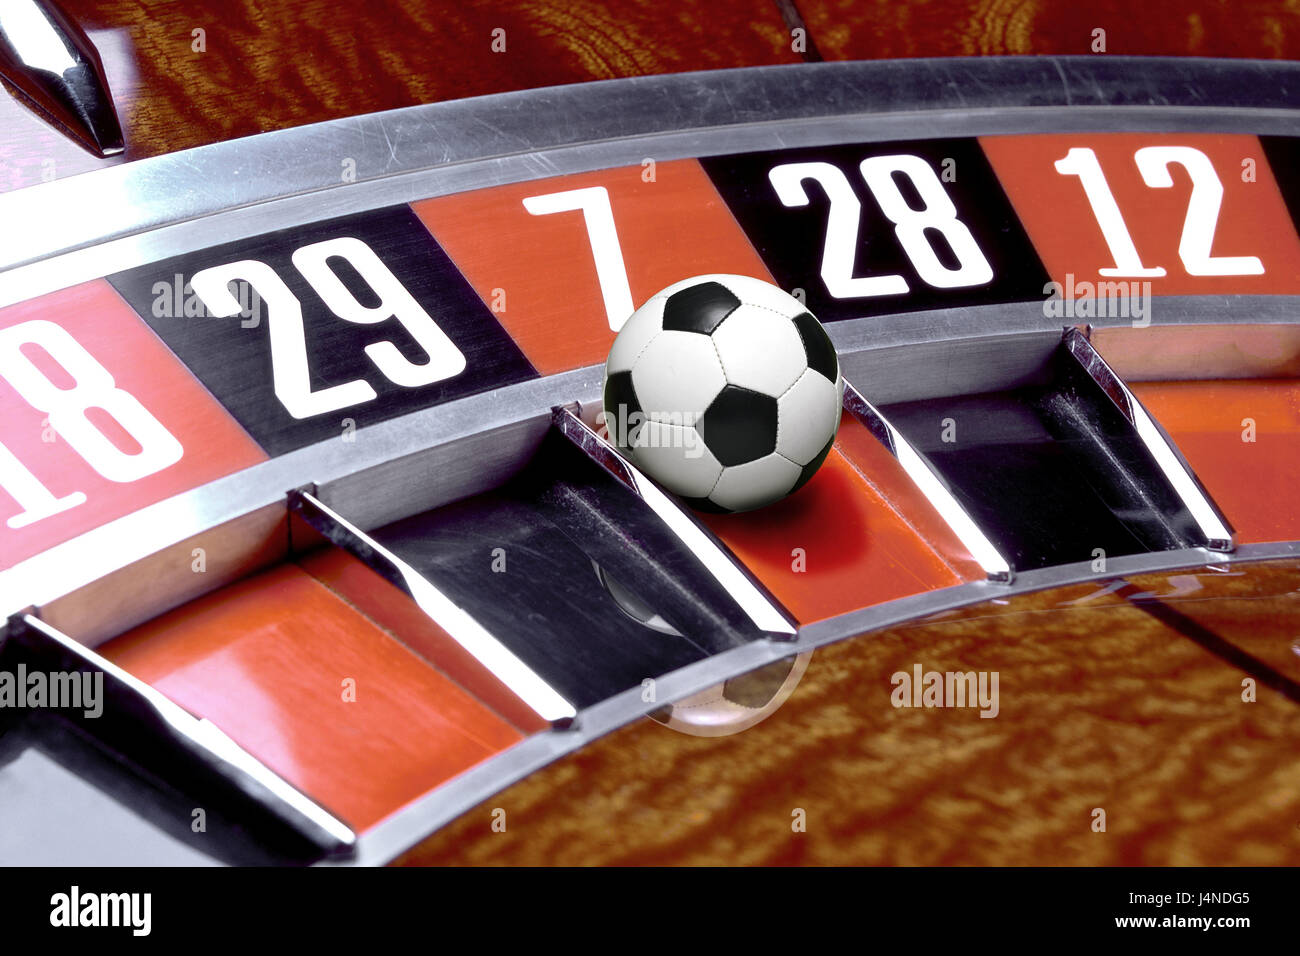 Roulette, football, fields, result, detail, luck, chance, game, gate, goals, possibilities, ball, superstition, - Stock Image